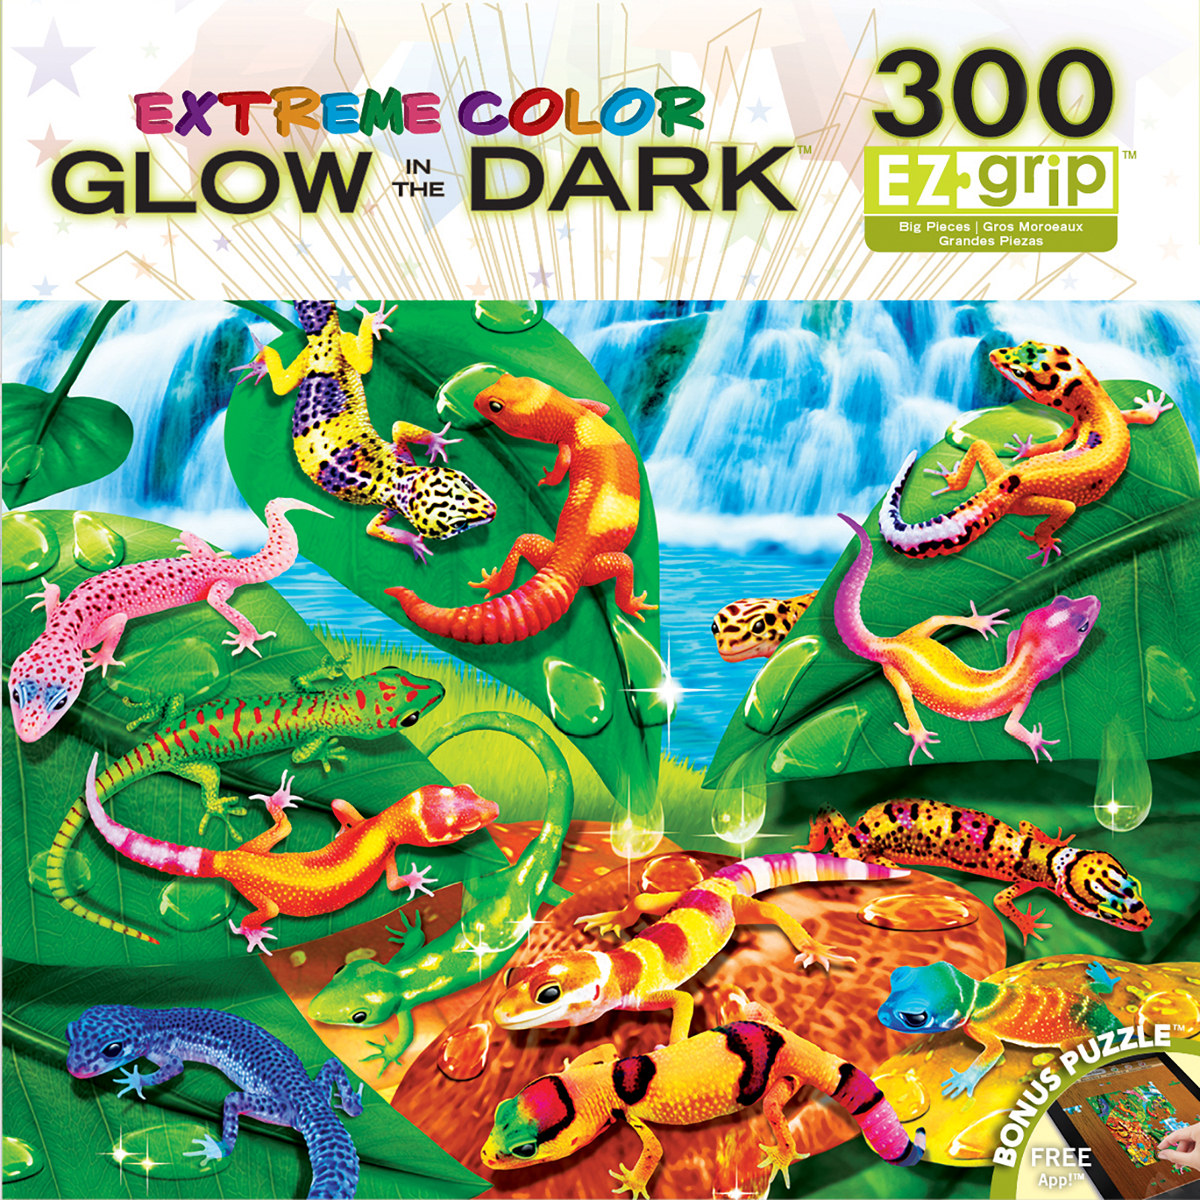 Geckos Galore (Extreme Color) - Scratch and Dent Reptiles / Amphibians Glow in the Dark Puzzle